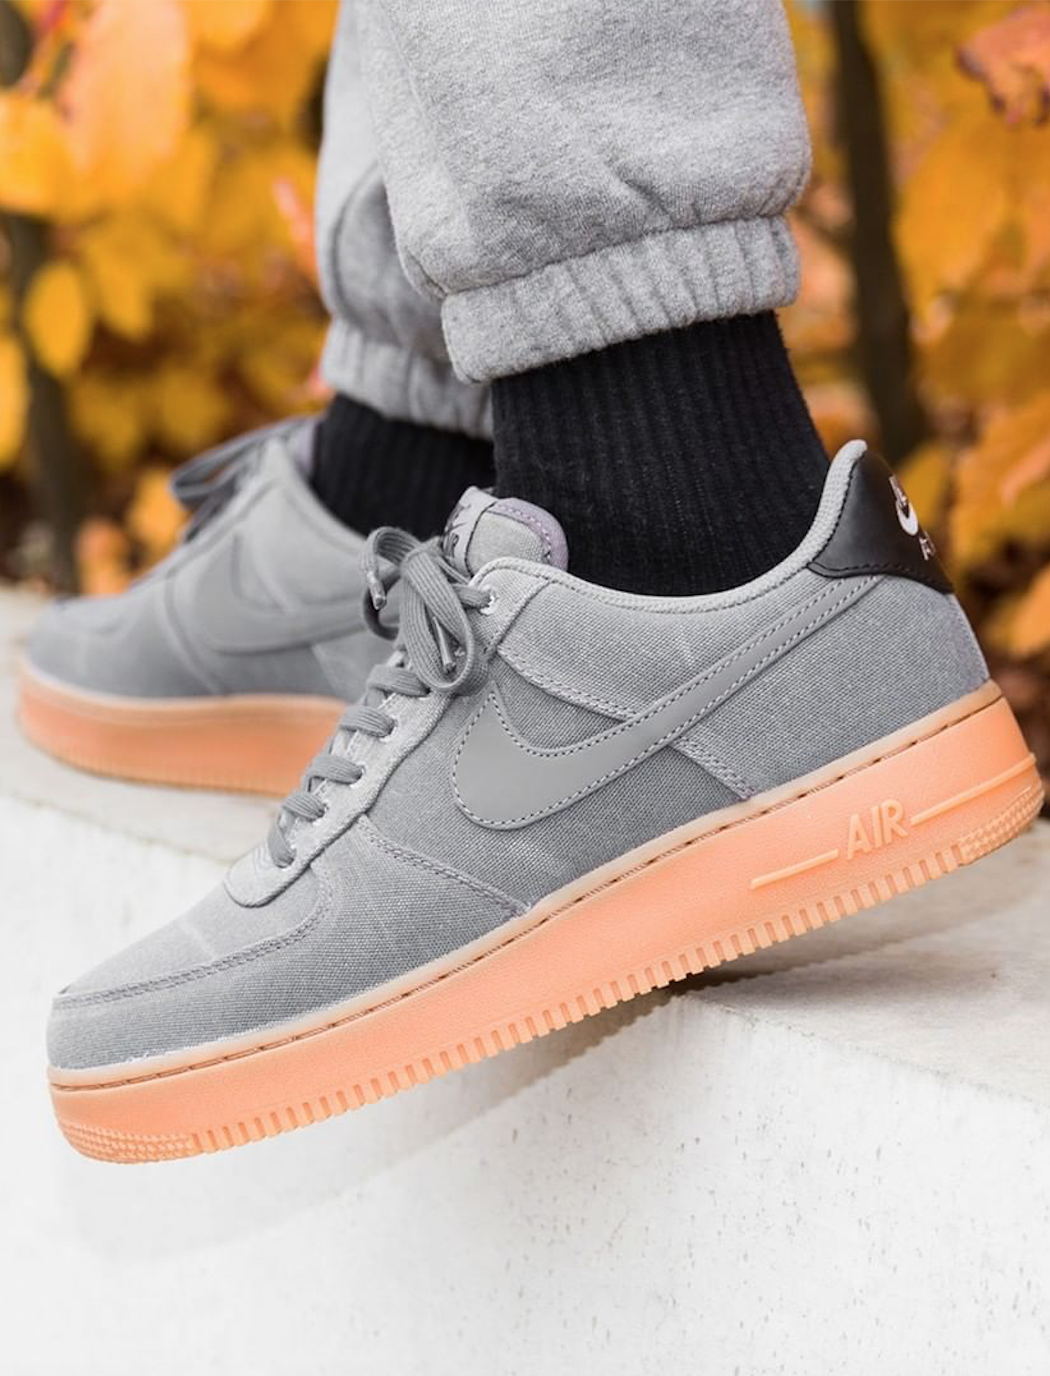 outlet store 65923 128c8 The Nike Air Force 1  07 LV8 Style incorporates the same hoops-inspired  performance of the  82 original, while adding fresh design details.